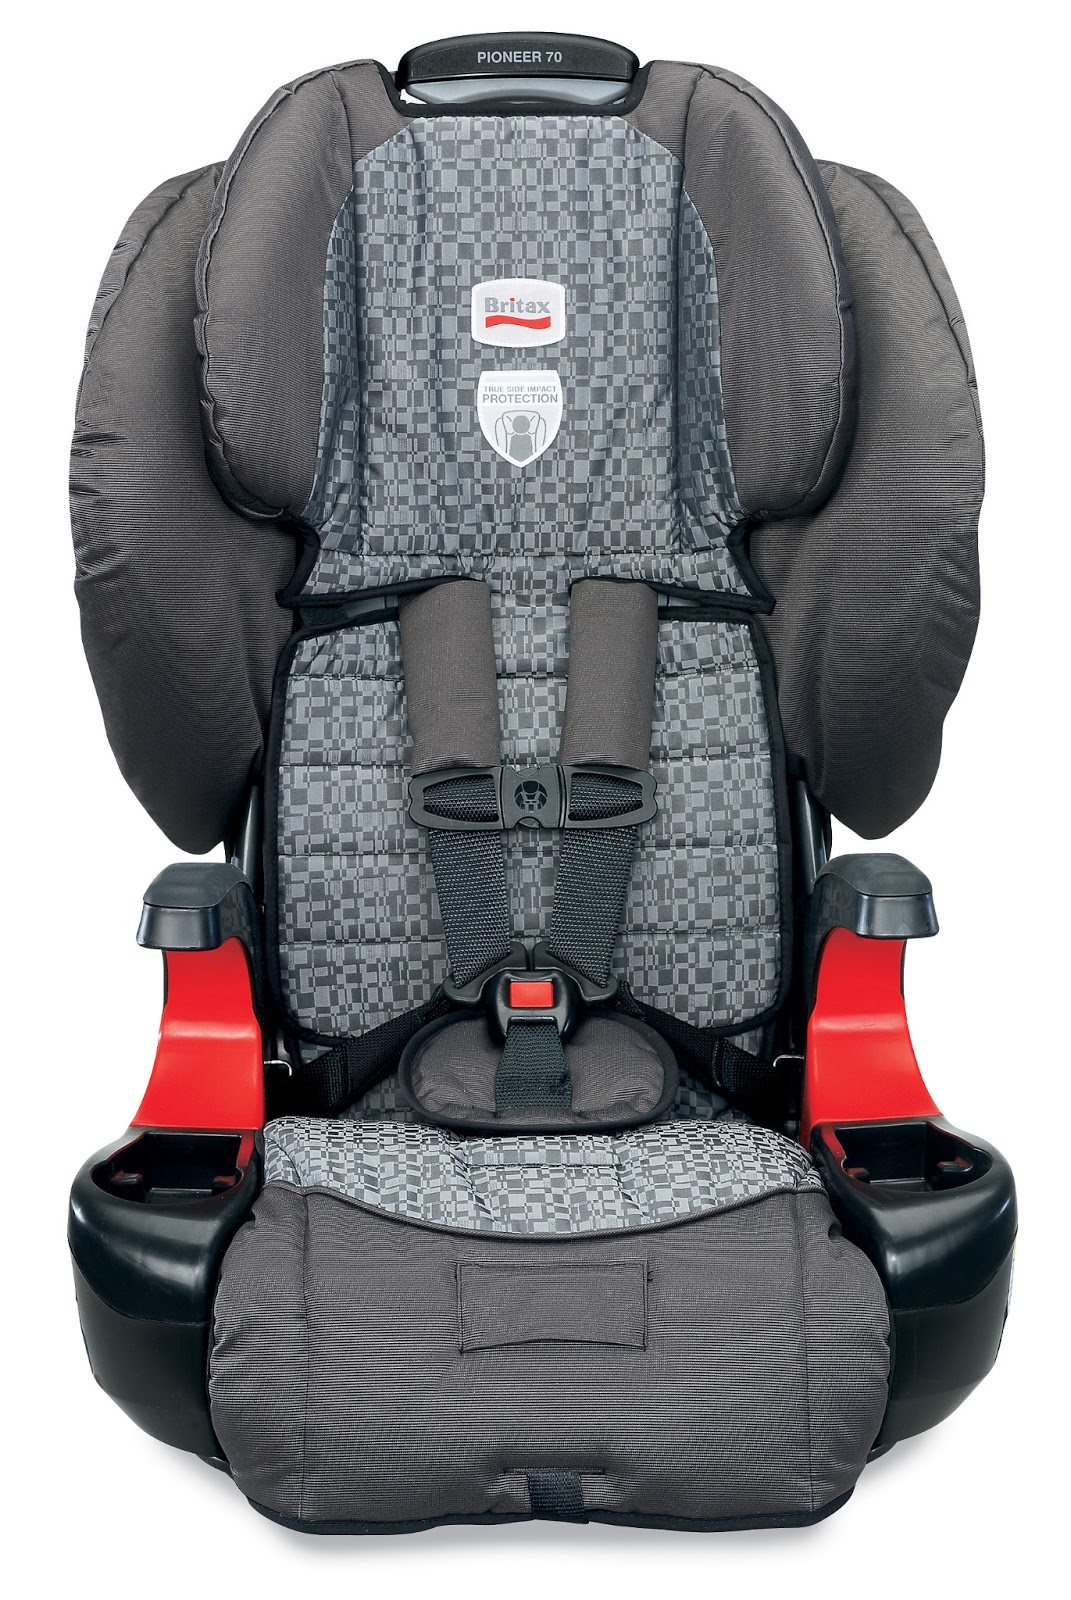 britax pioneer 70 combination harness 2 booster seat marinobambinos. Black Bedroom Furniture Sets. Home Design Ideas